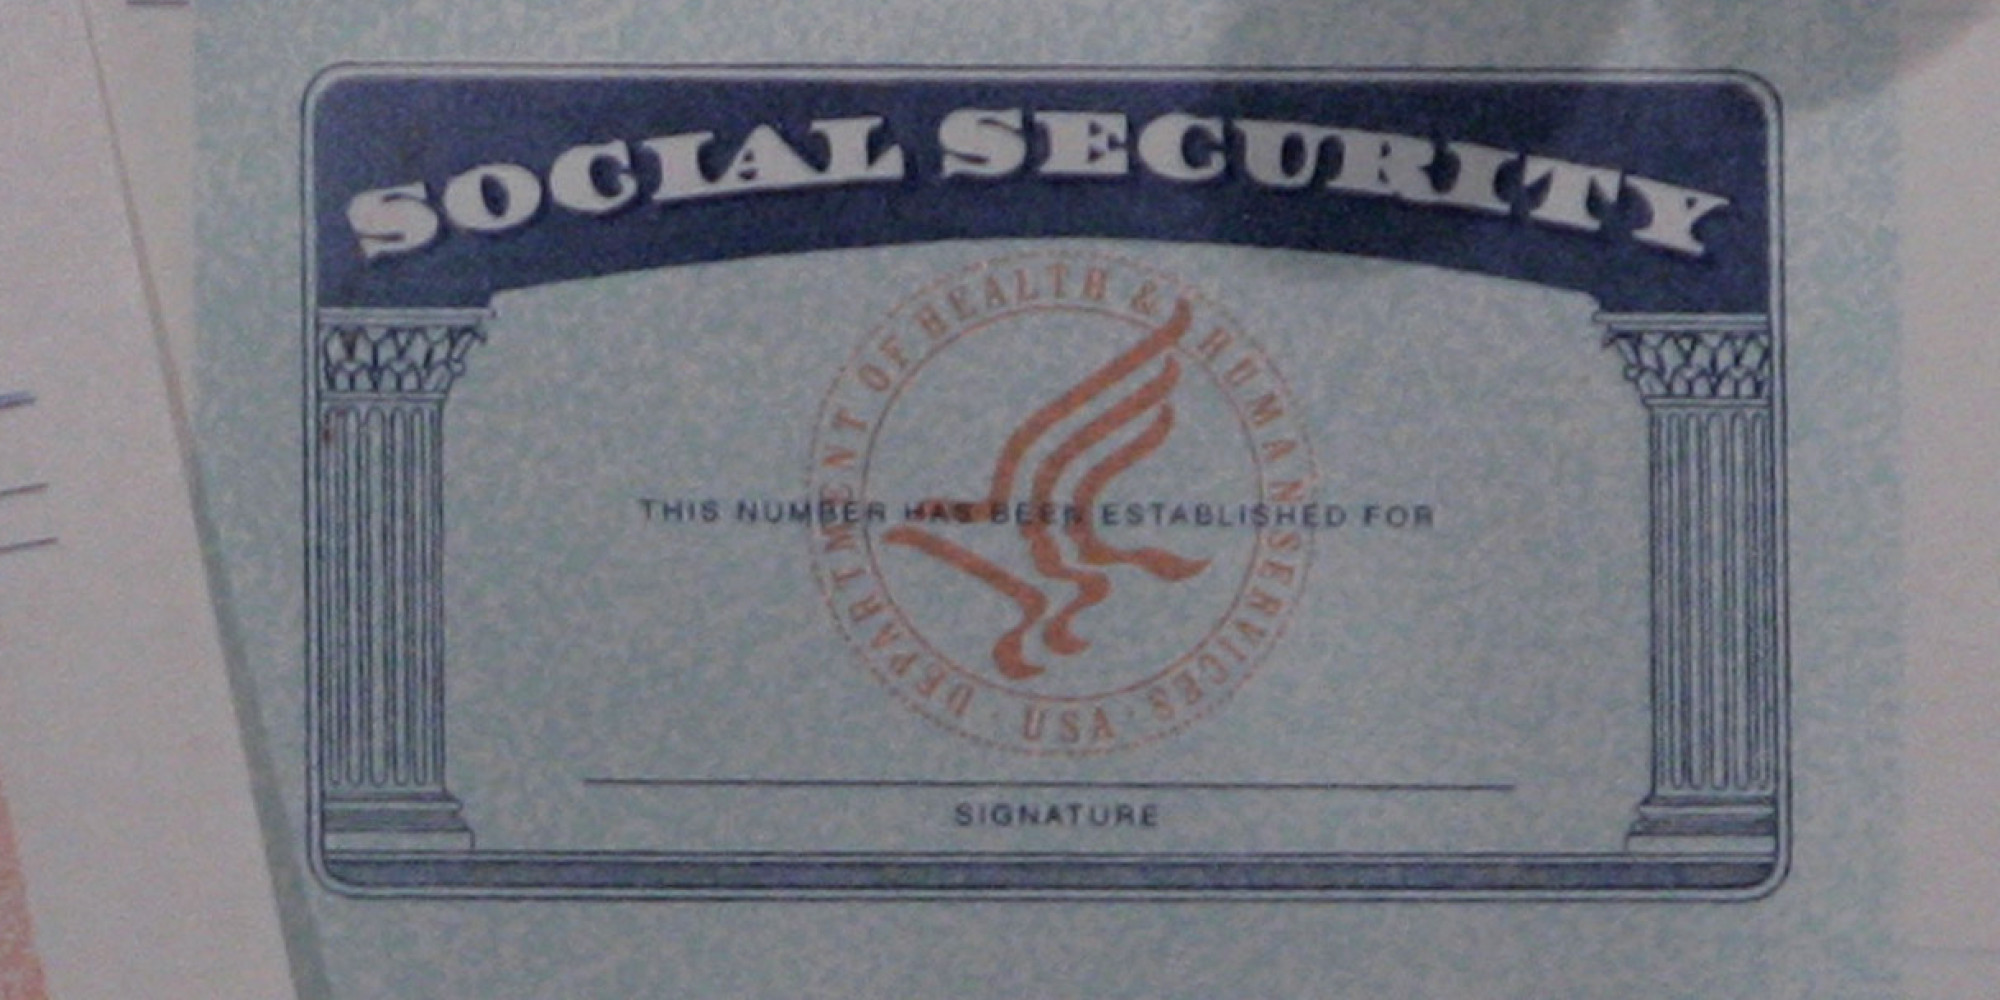 Top Blank Social Security Card Images For Pinterest Tattoos